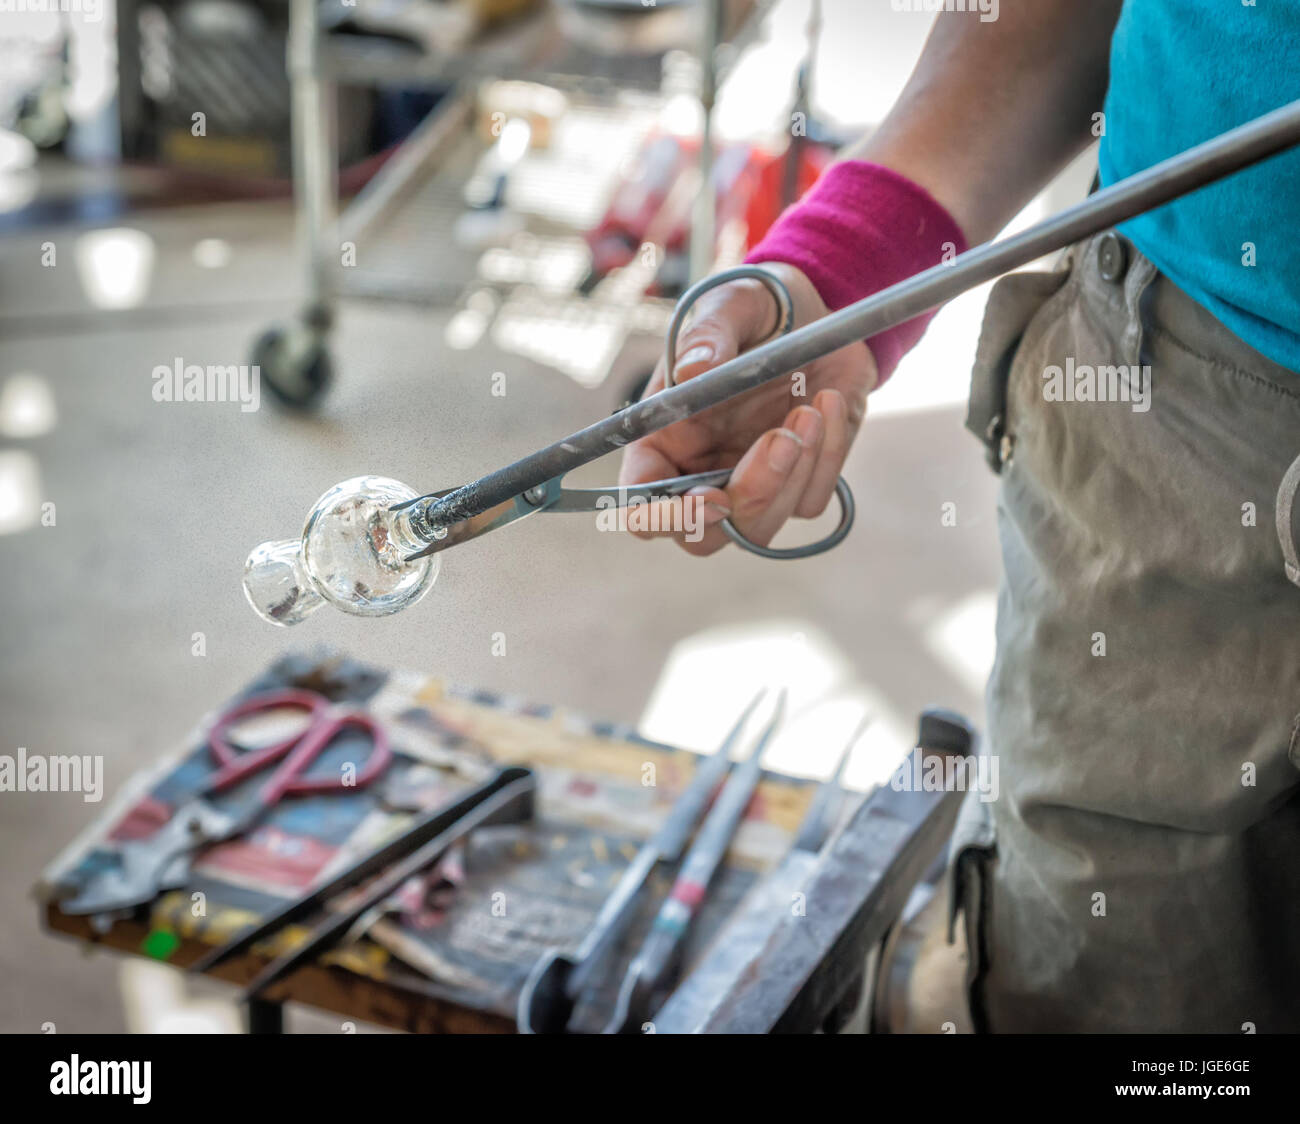 Glass blower working at an open market at Pikes Place Market, Seattle, Washington. - Stock Image